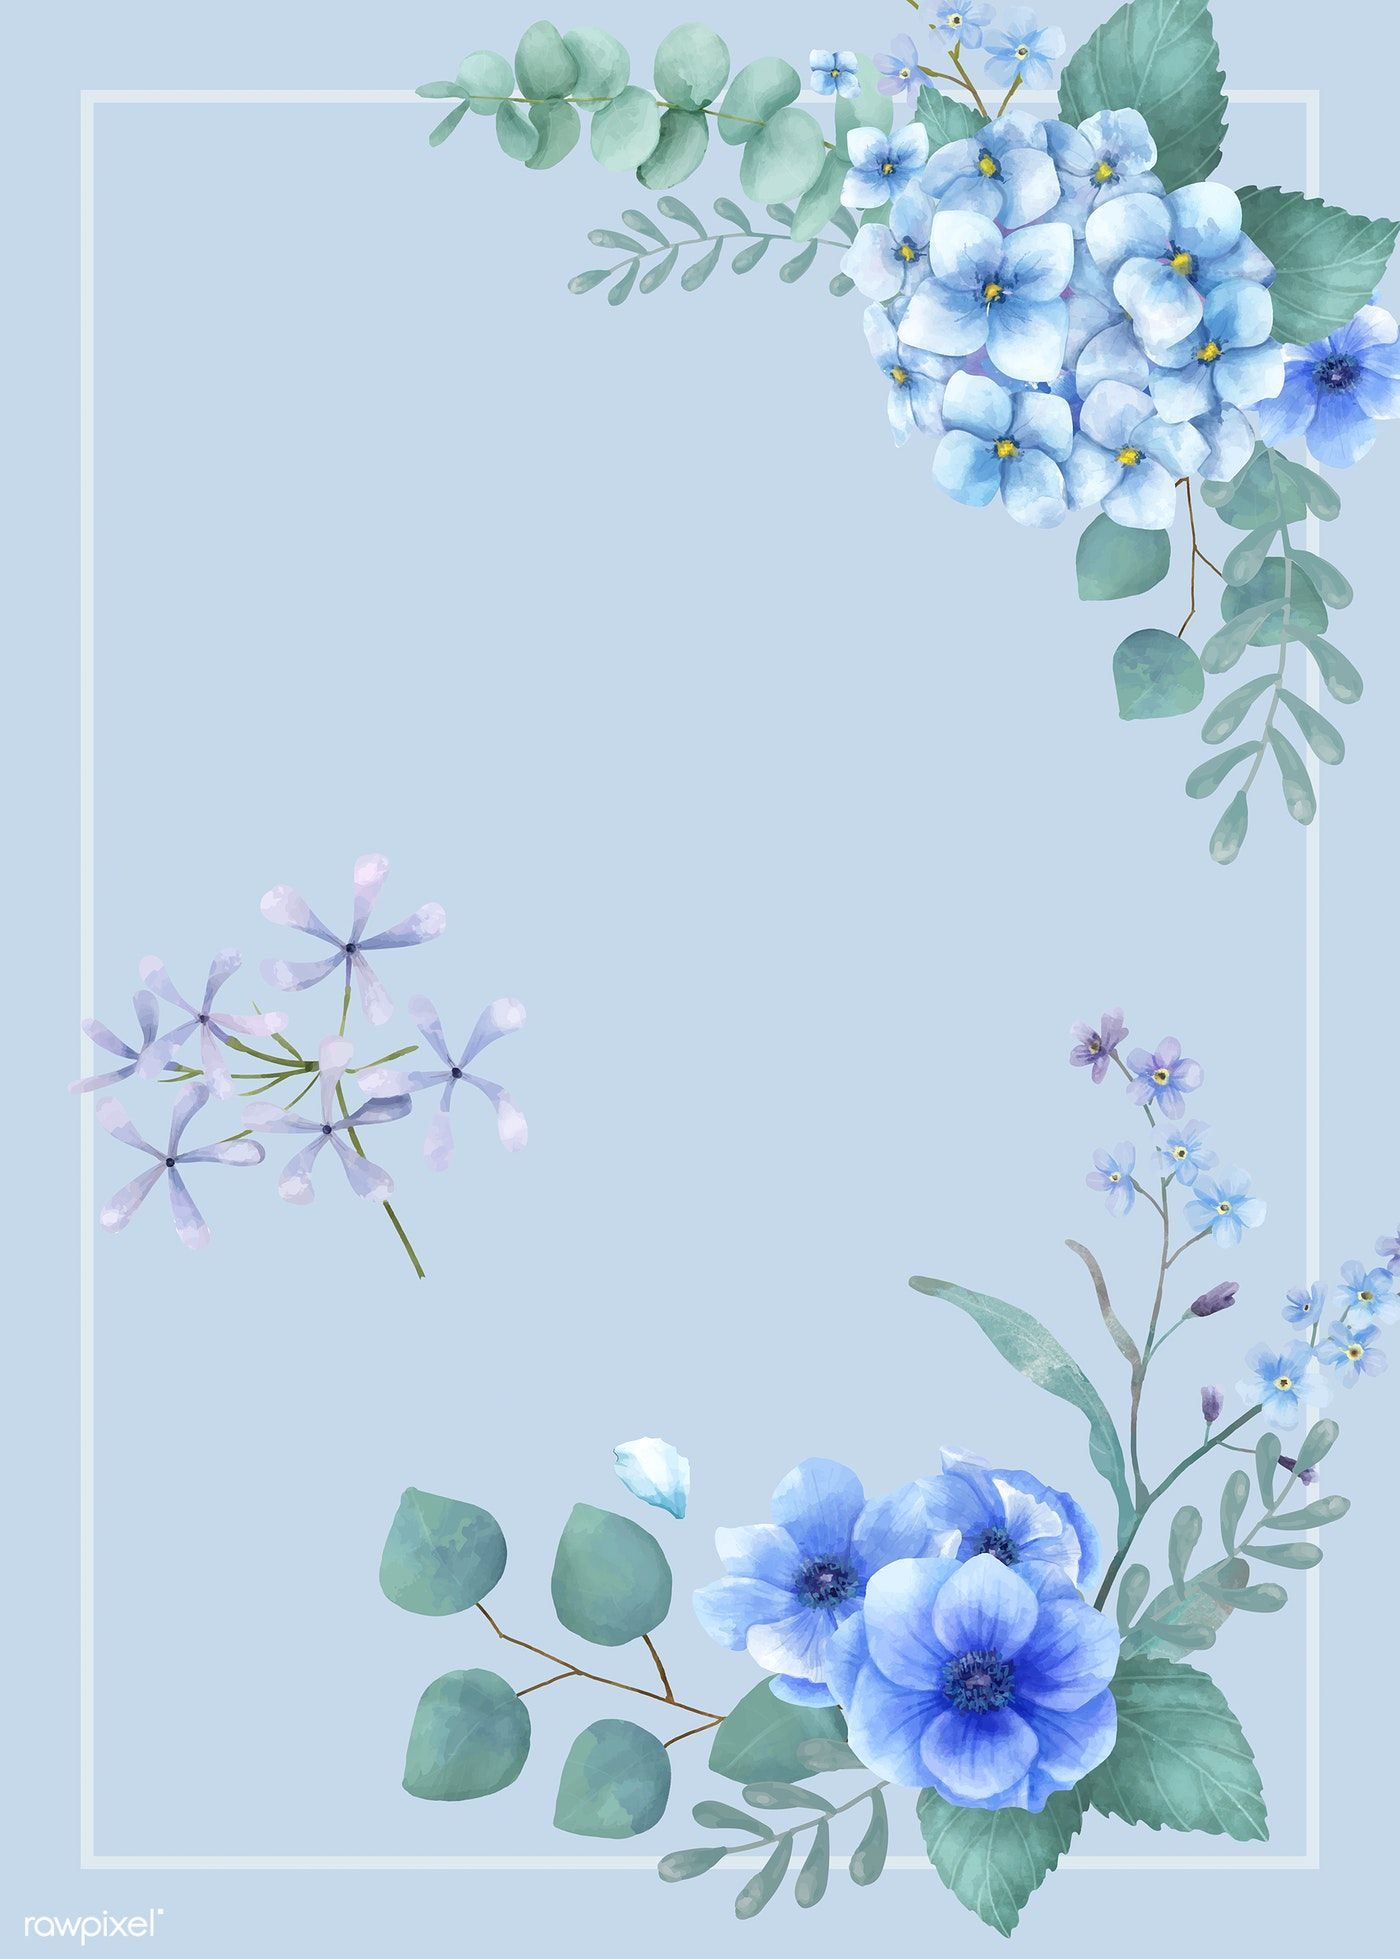 Download Premium Vector Of Blue Themed Greetings Card With Miniature Flower Background Wallpaper Blue Flower Wallpaper Flower Illustration